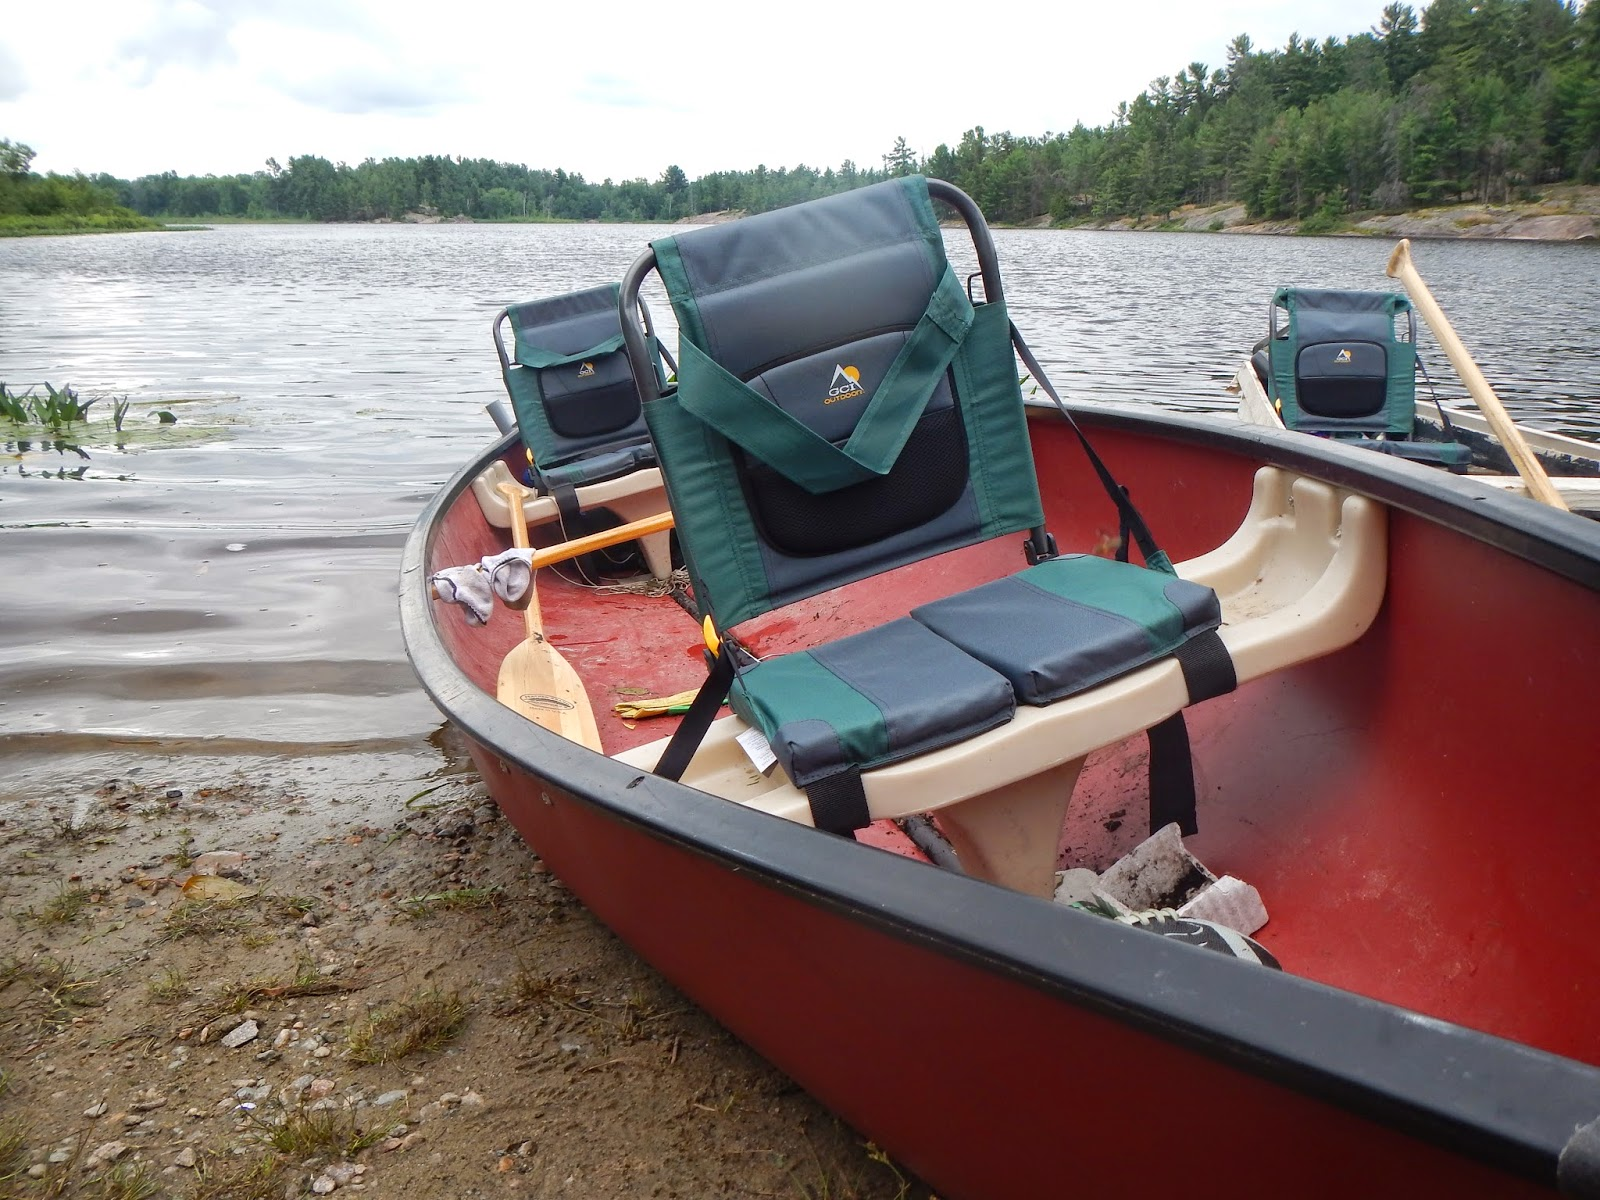 Canoe Chair Where To Buy Kitchen Chairs Simple Ways Outfit A Fishing Real Man Travels